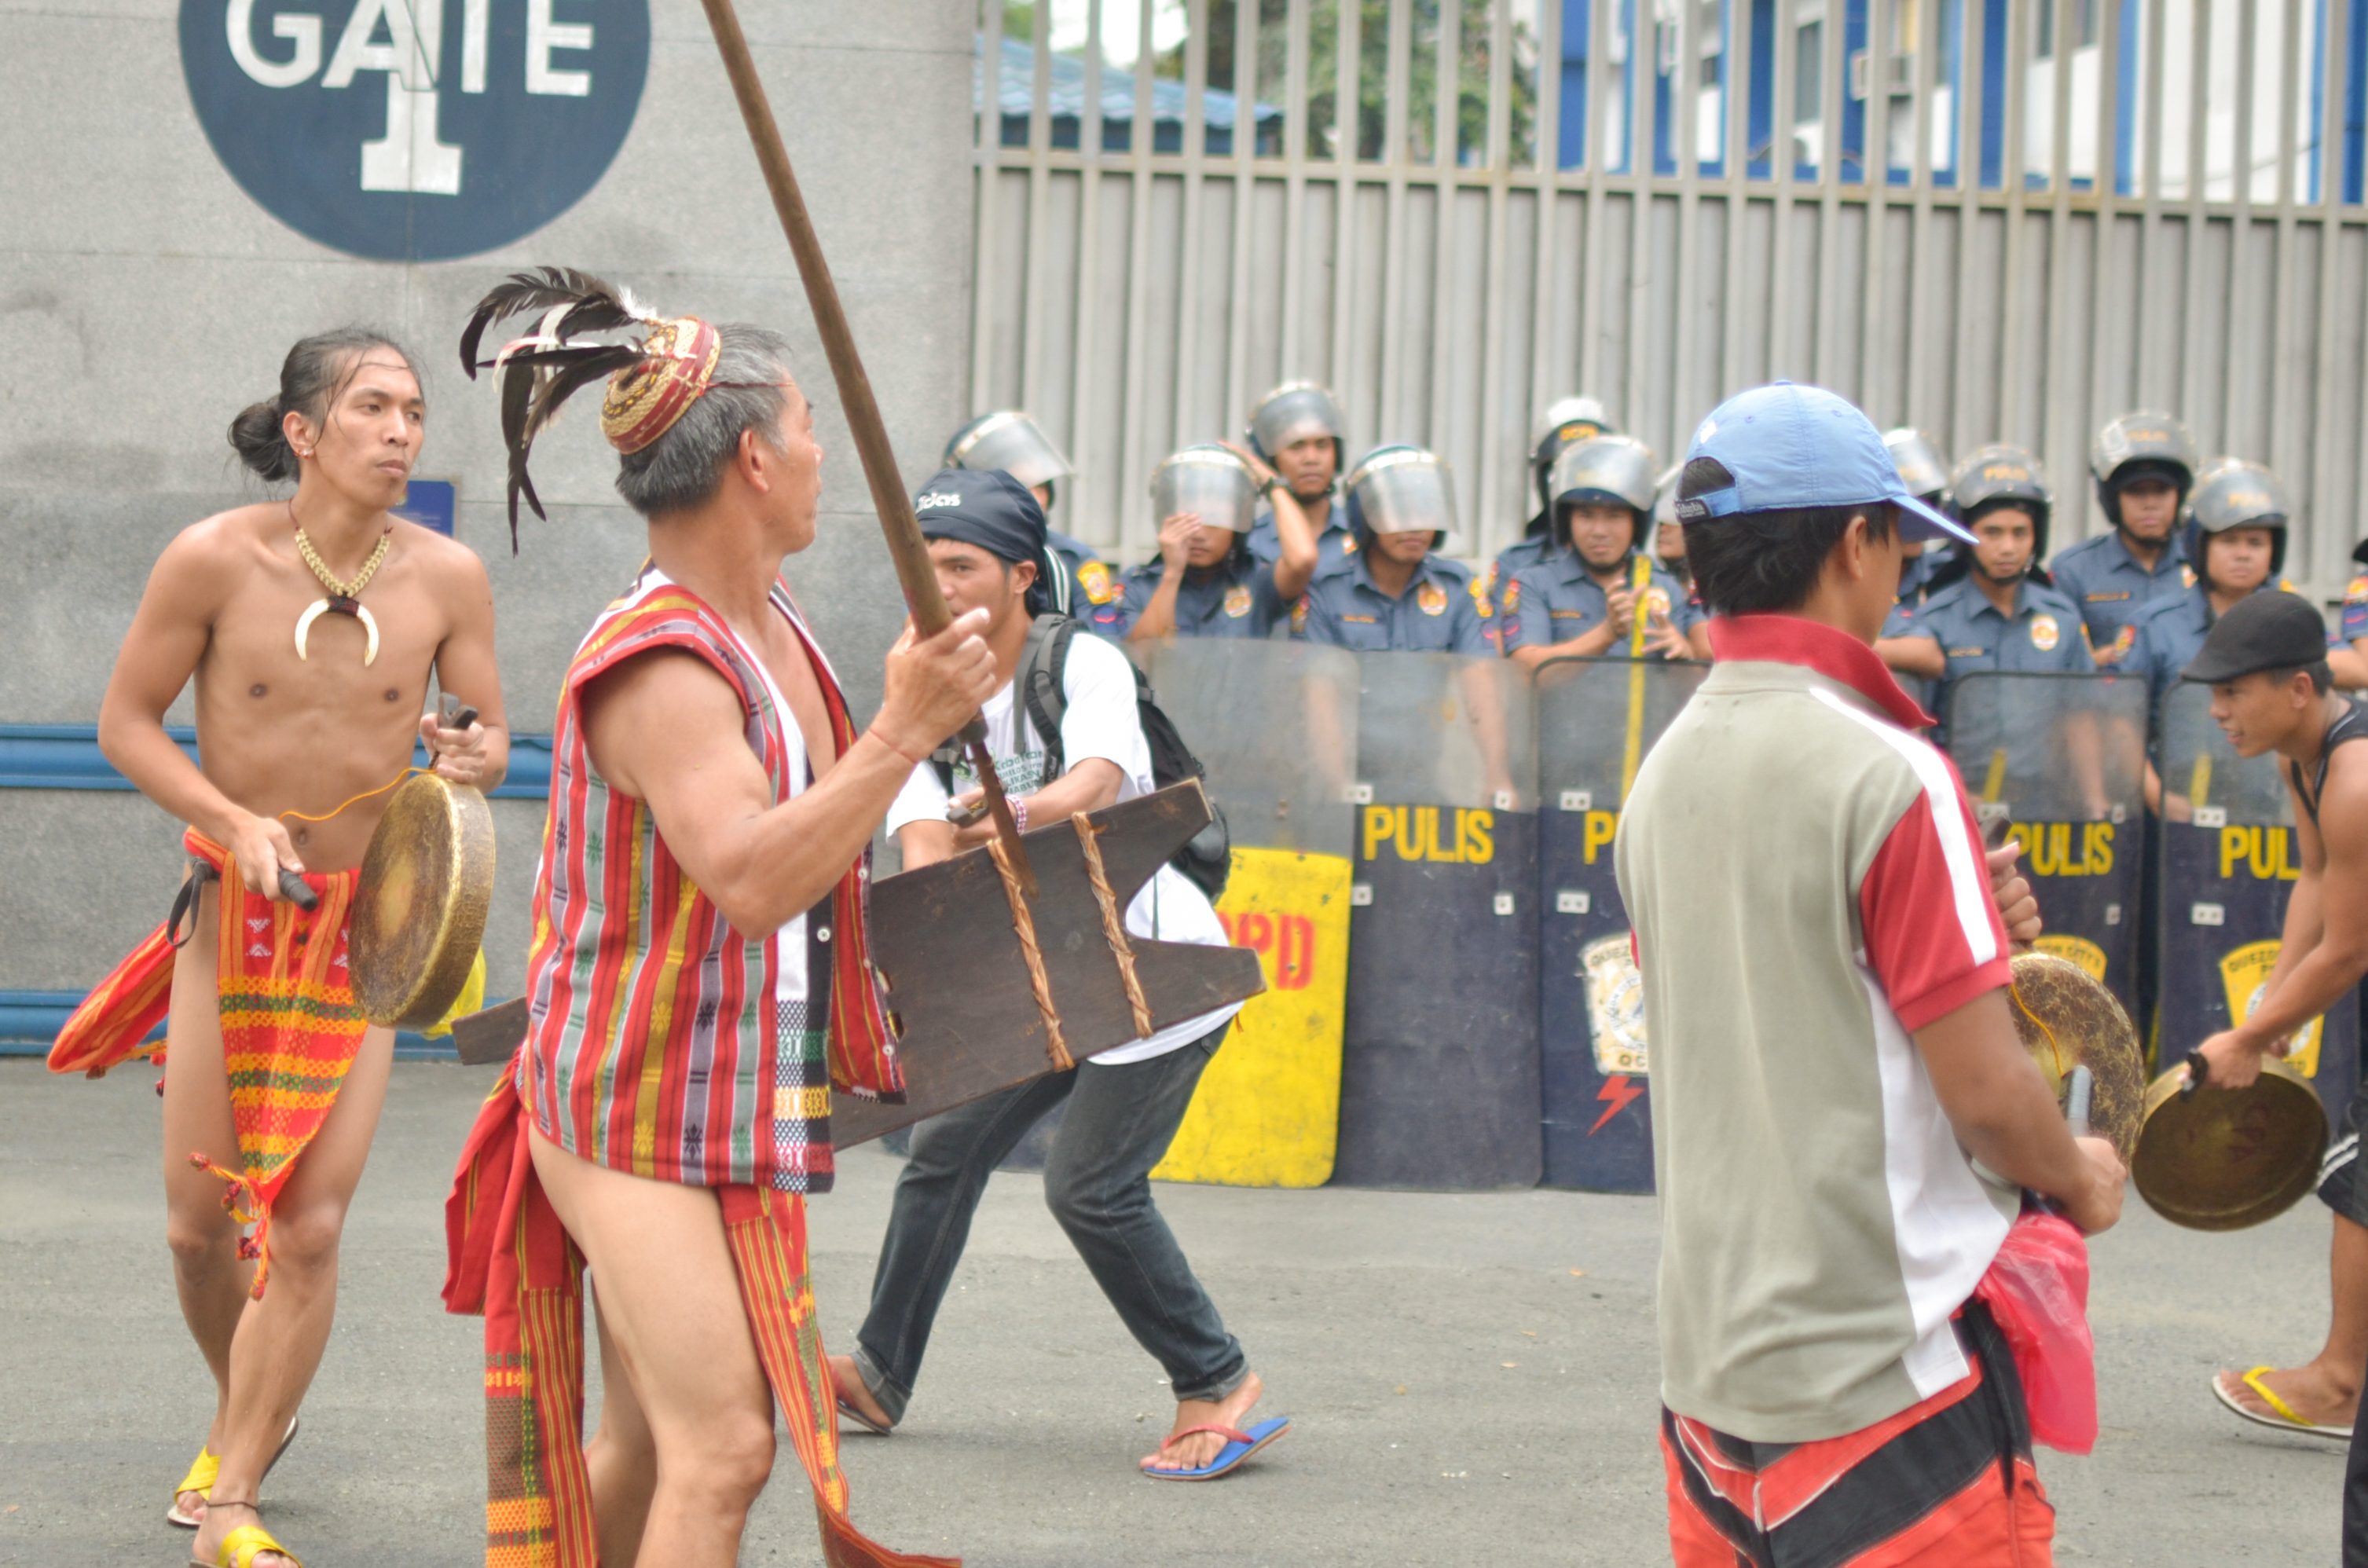 Cordillerans at the gate of Camp Crame, the PNP headquarters. (Photo by Carlo Manalansan/Bulatlat)